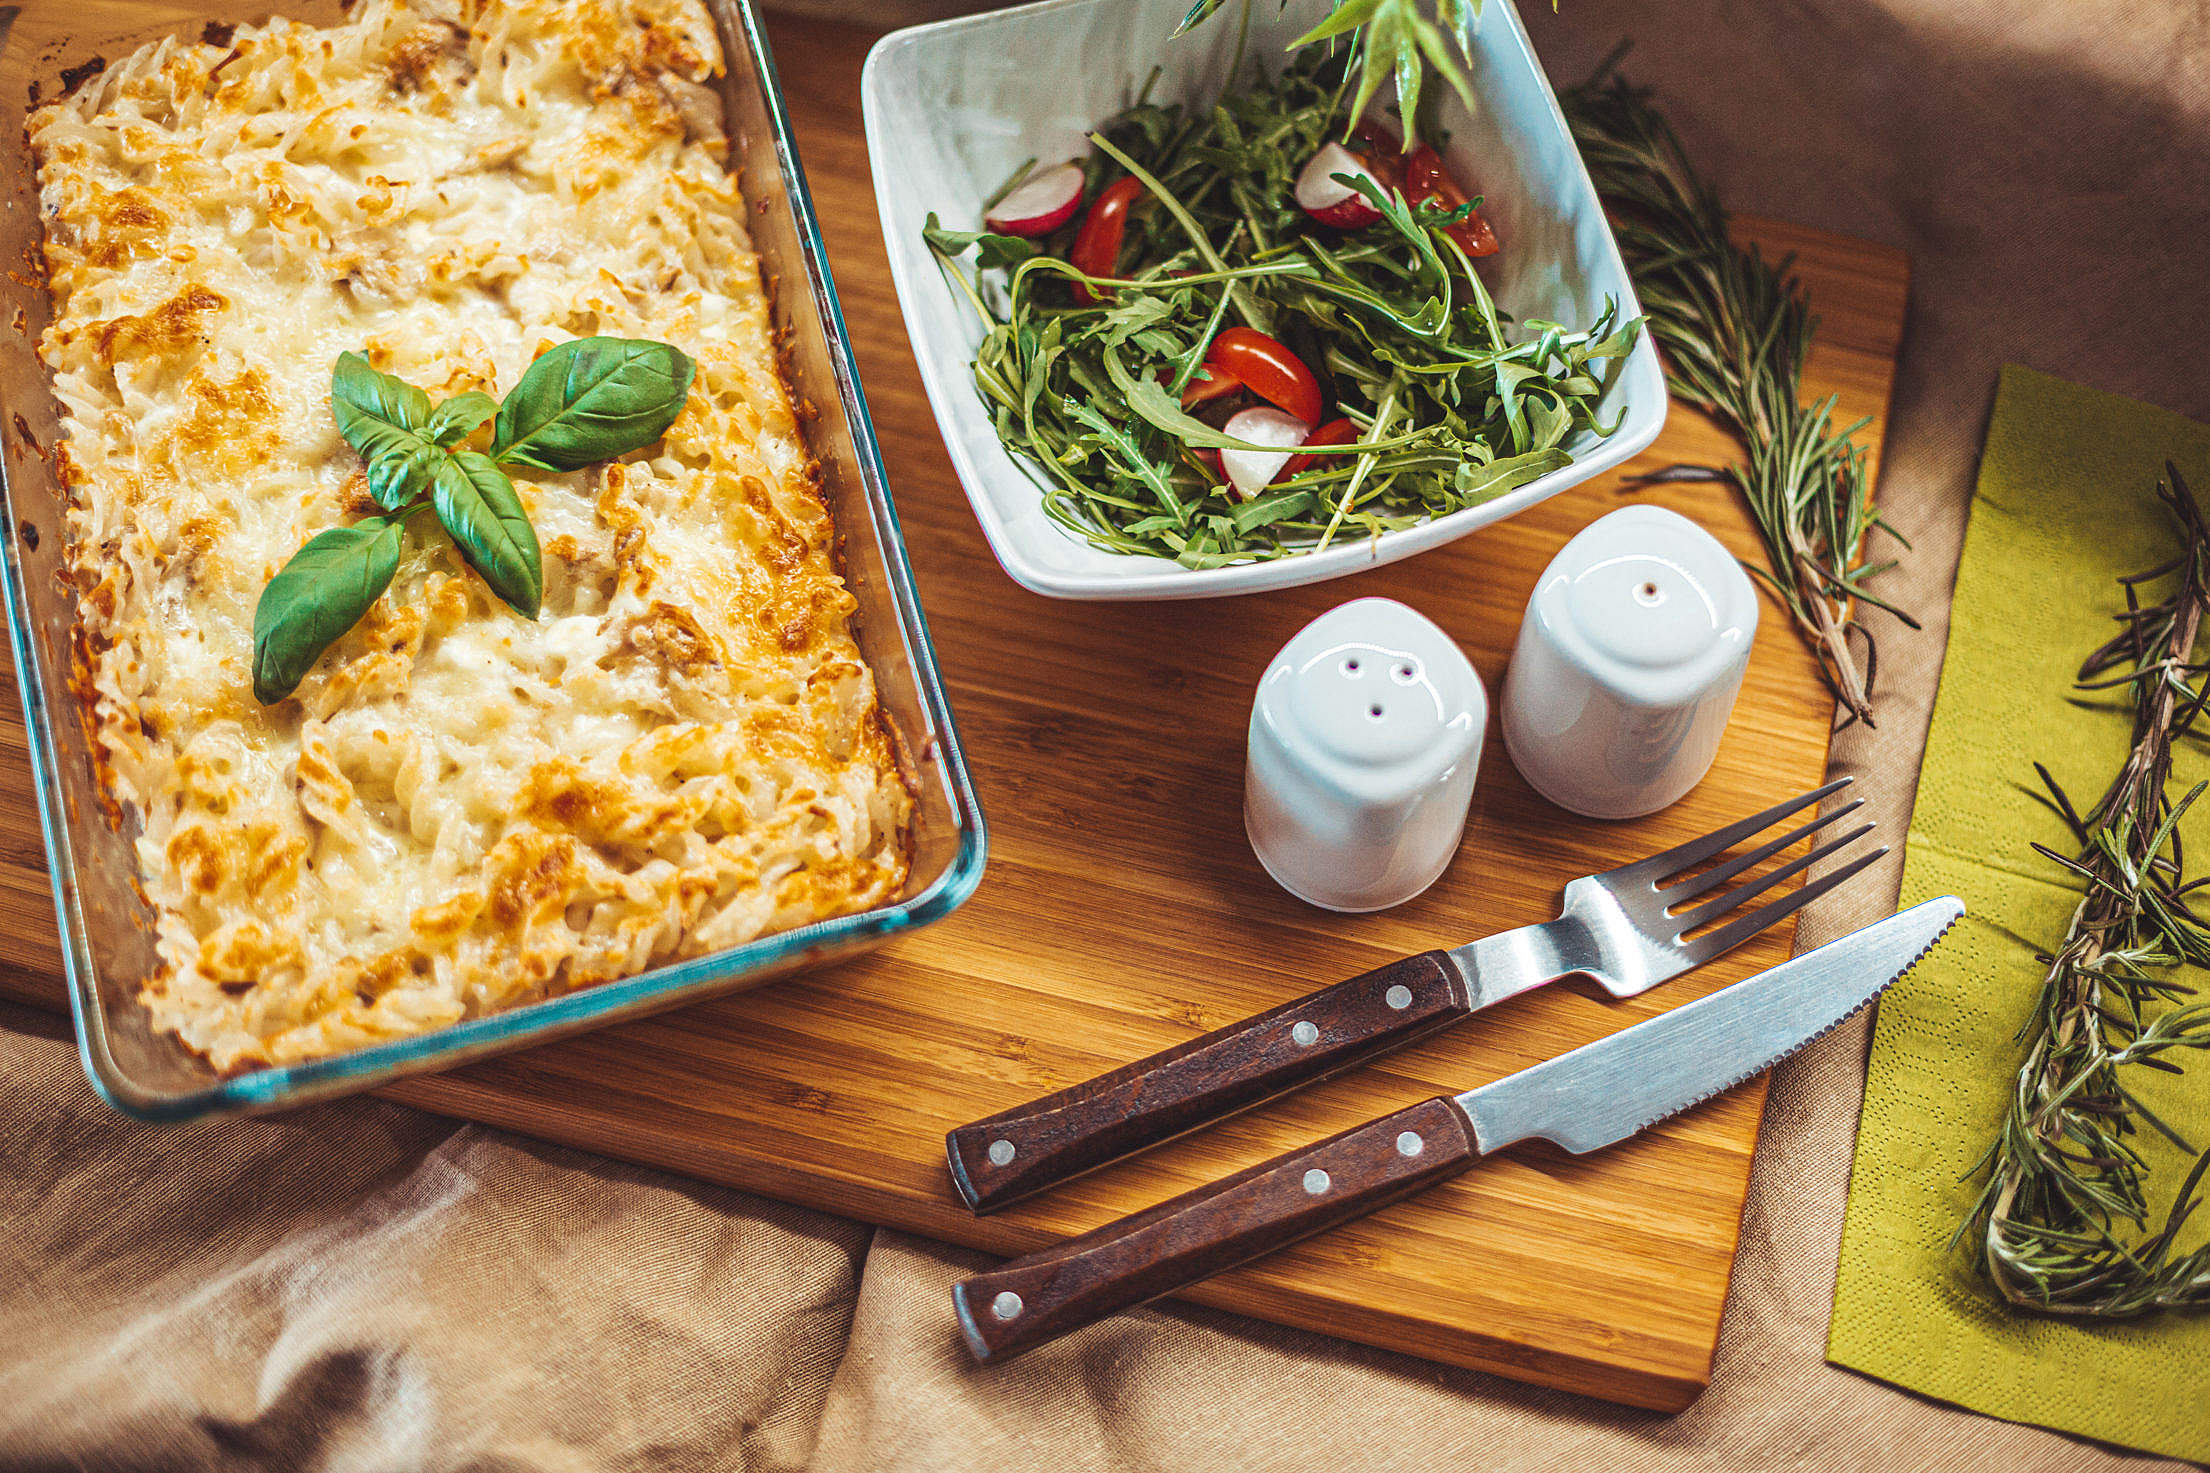 Baked Pasta With a Tuna and a Vegetable Salad Free Stock Photo